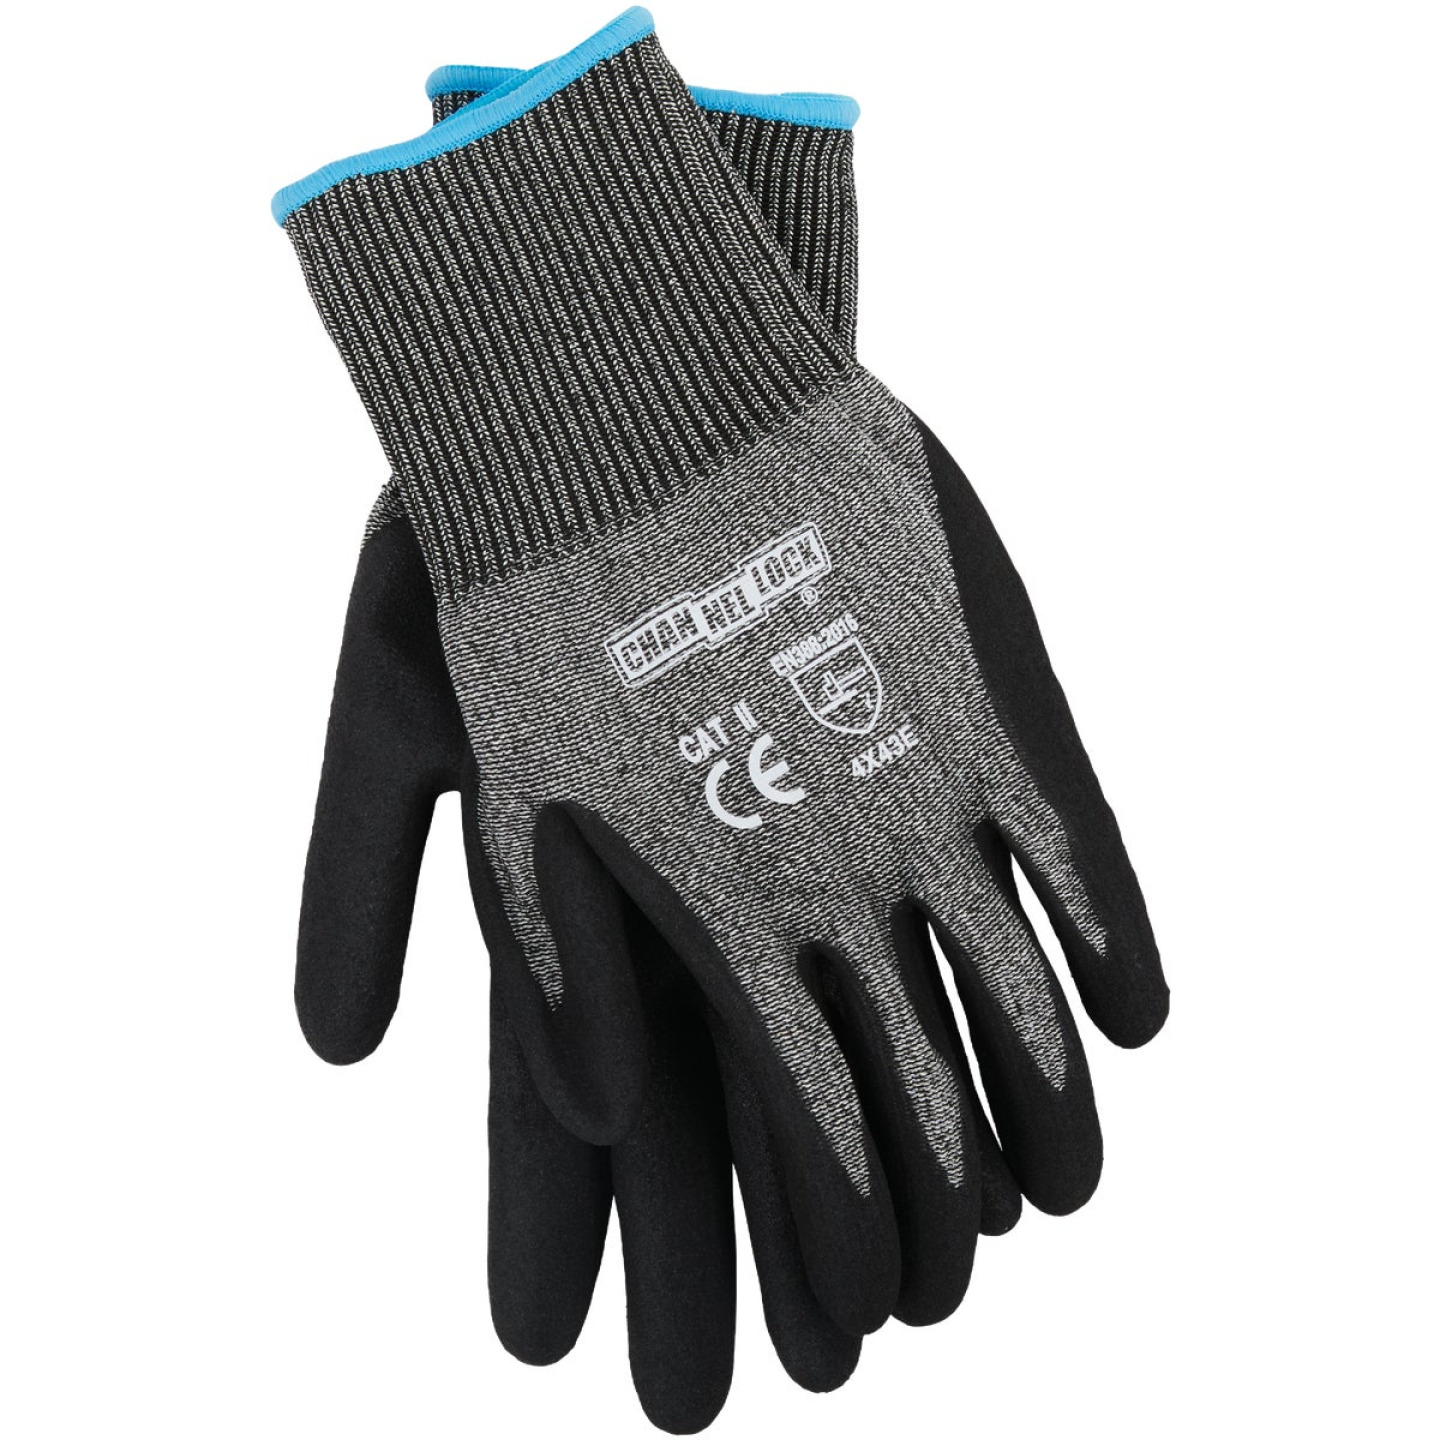 Channellock Men's Large Nitrile Dipped Cut 5 Glove Image 1